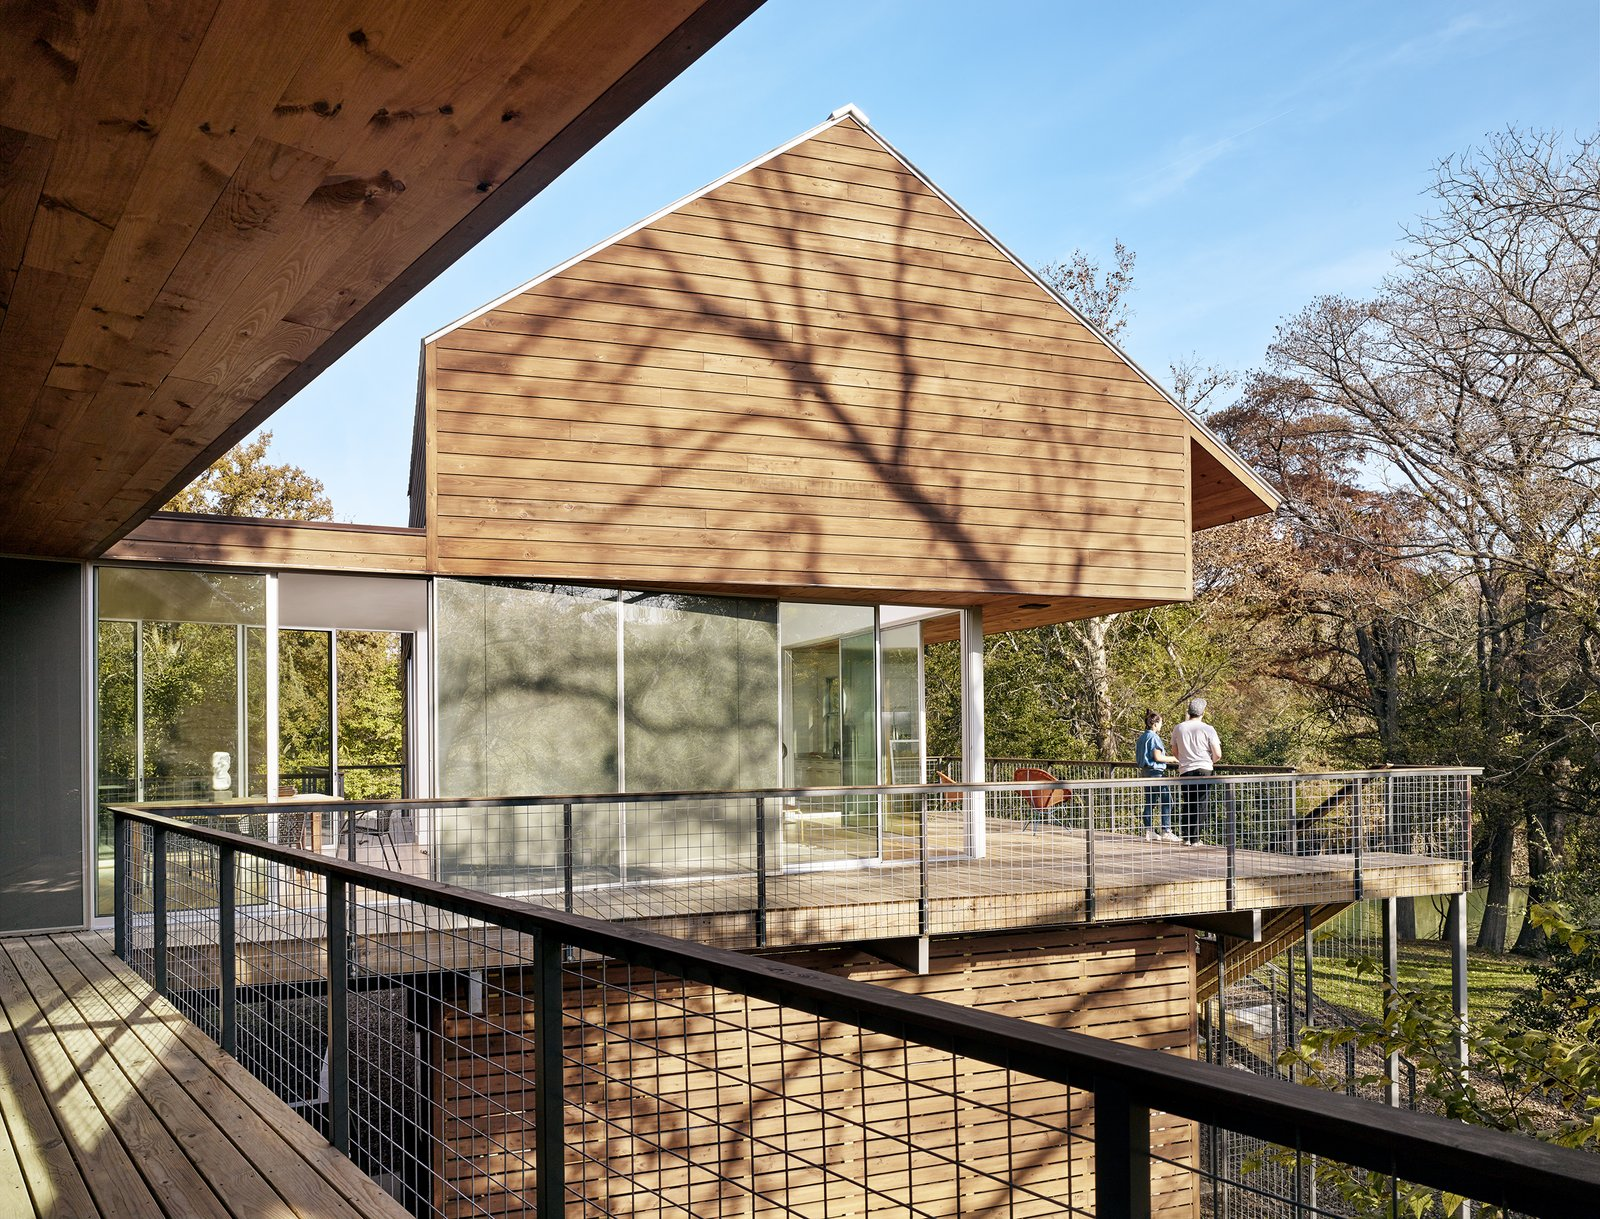 Exterior, Metal Roof Material, Wood Siding Material, Flat RoofLine, Glass Siding Material, House Building Type, and Gable RoofLine View from outdoor porch by Low Design Office  Guadalupe River House